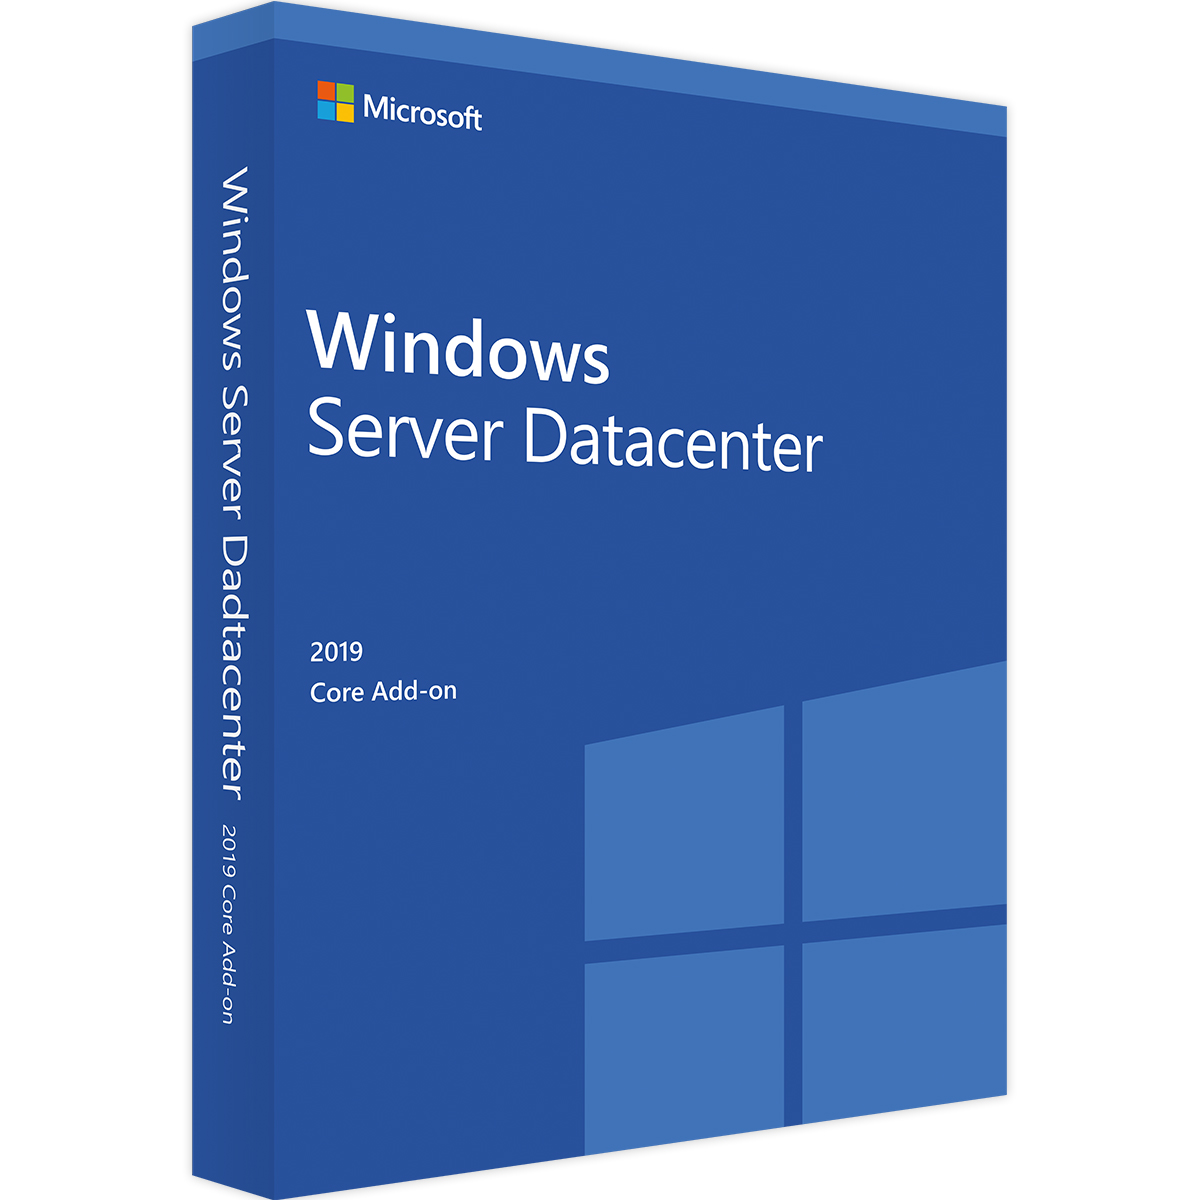 Microsoft Windows Server Datacenter 2019 64Bit 16 Core DVD SB/OEM, Deutsch